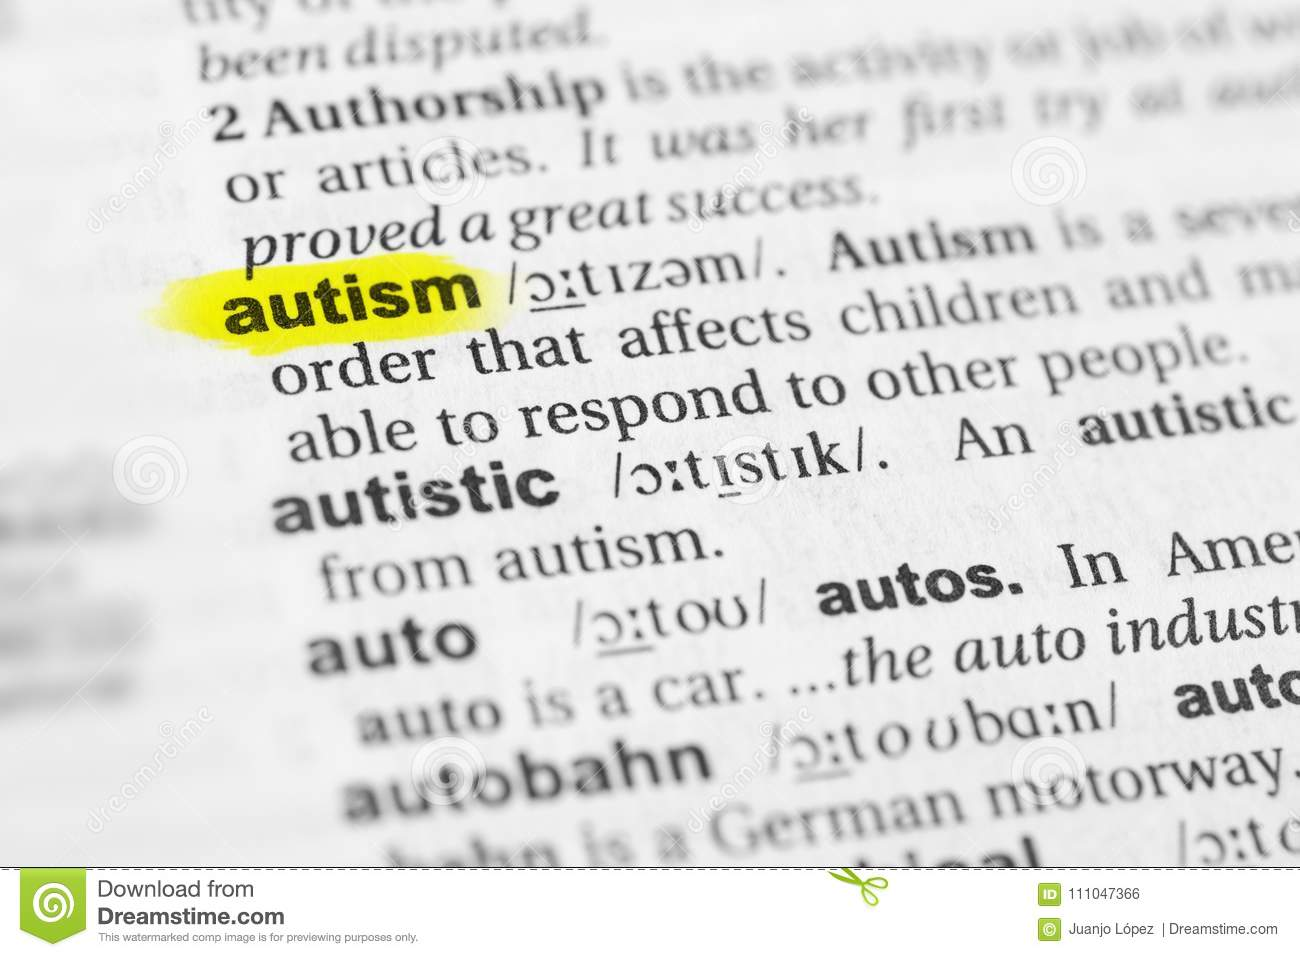 highlighted english word `autism` and its definition in the